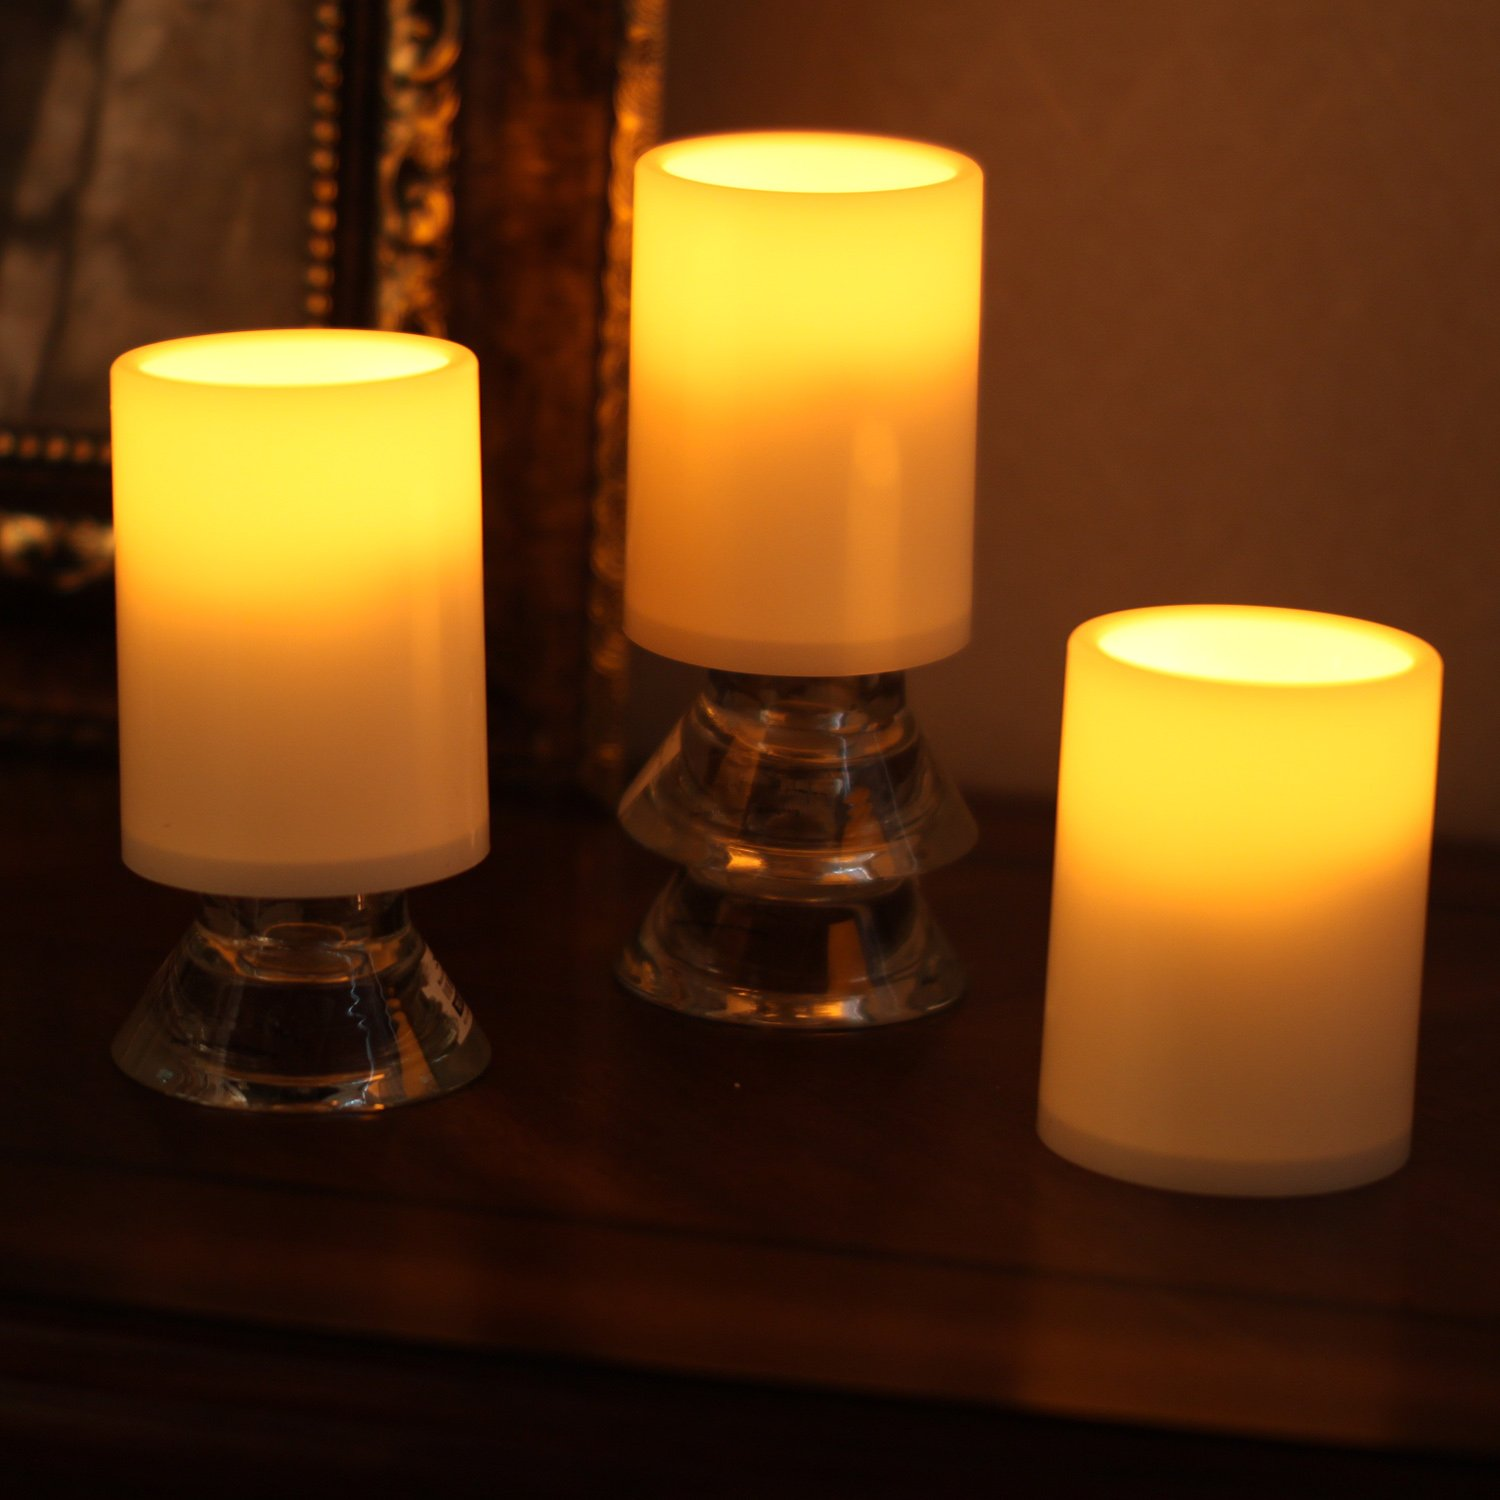 amazon com home impressions flameless battery operated plastic amazon com home impressions flameless battery operated plastic pillar led candle light with timer 3 x 4